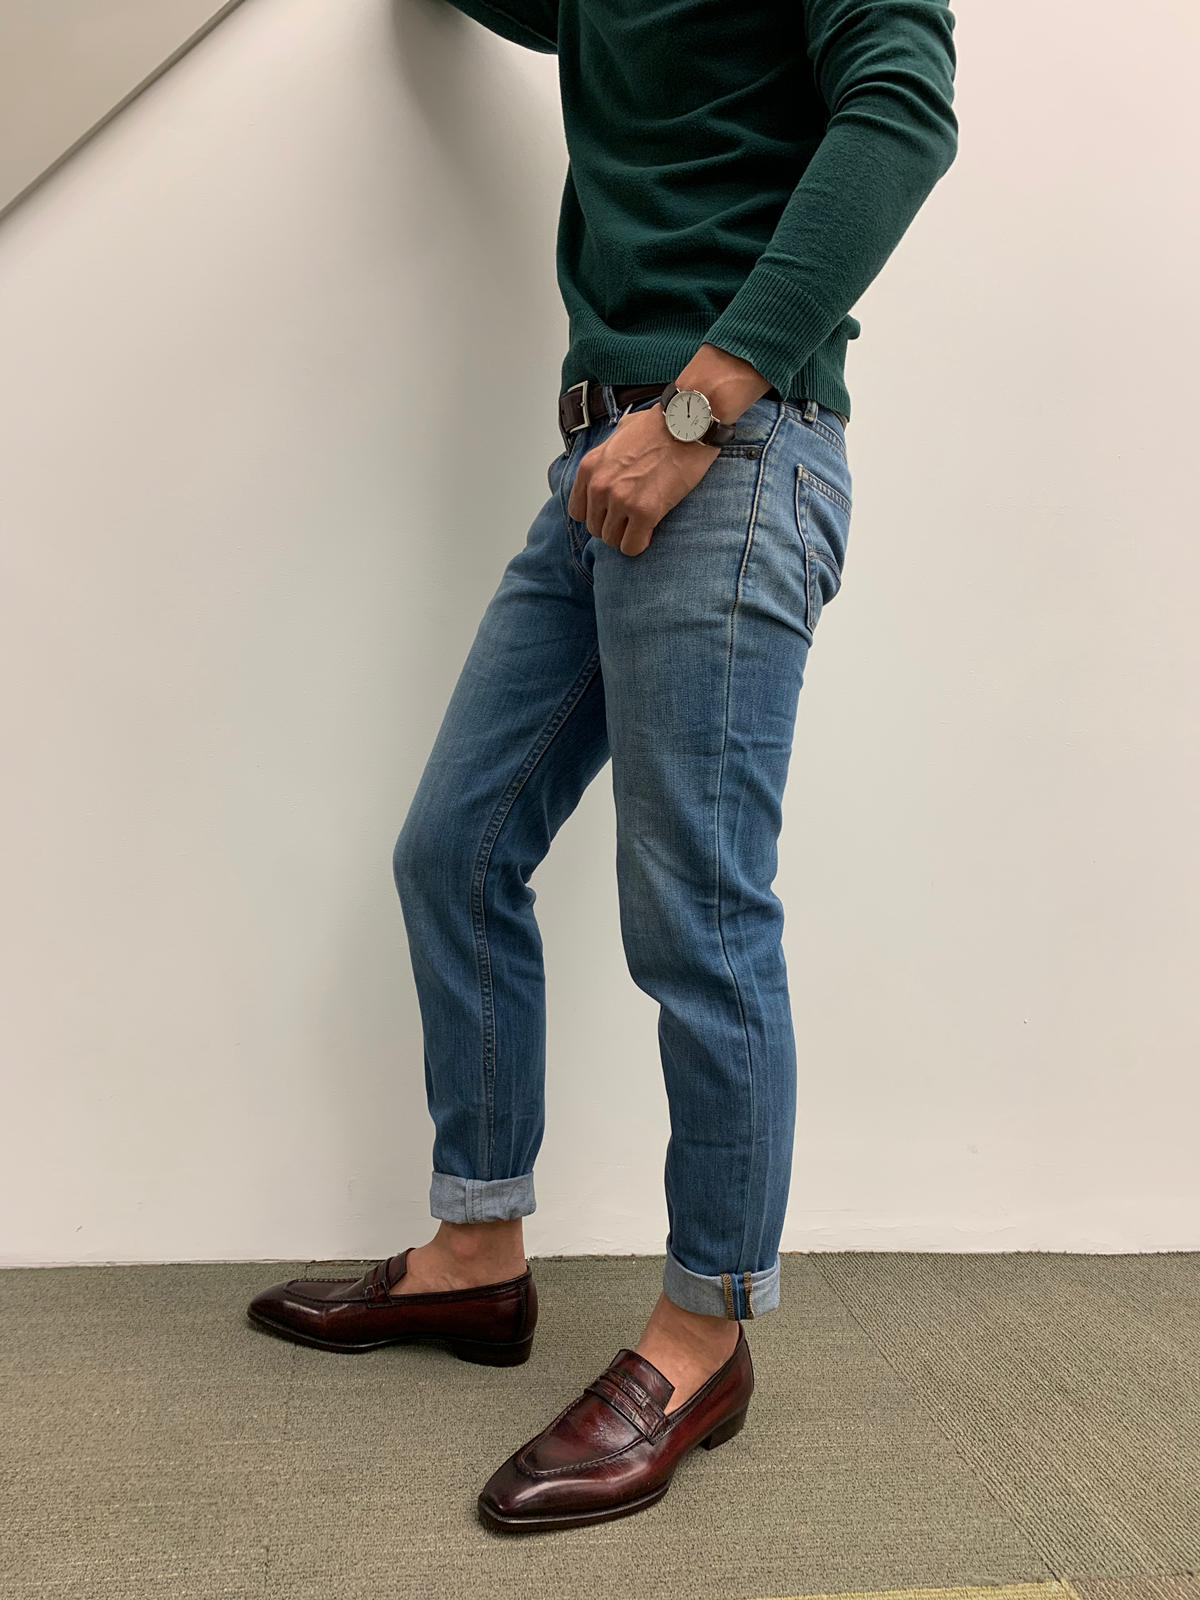 Cuff your jeans up for a more casual look.